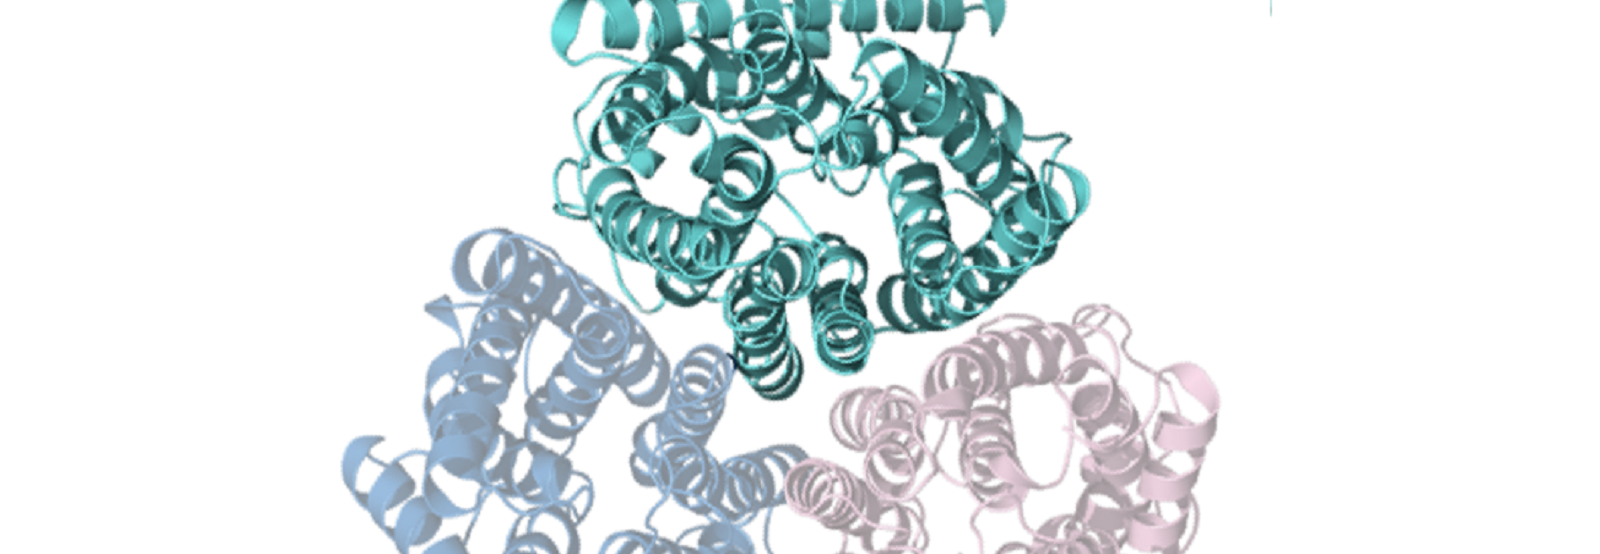 Overhead view of the protein structure of Amt